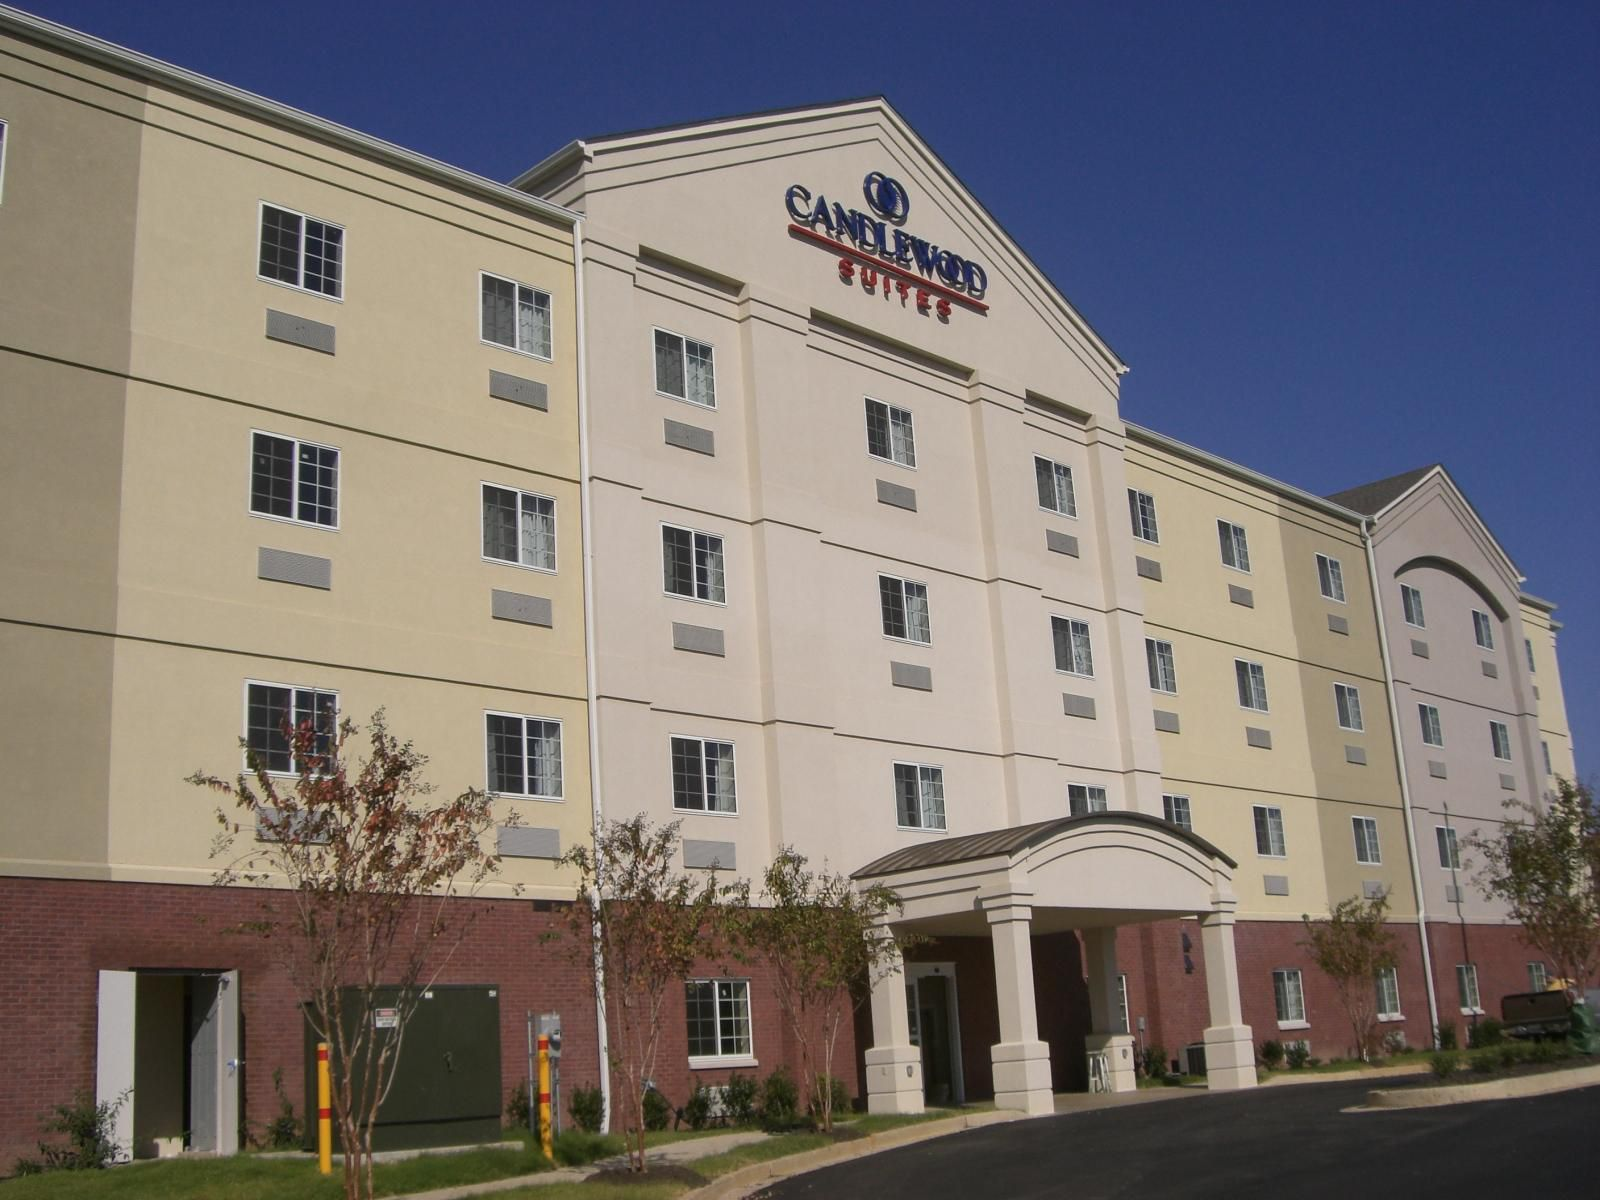 Memphis Hotels Candlewood Suites Extended Stay Hotel In Tennessee